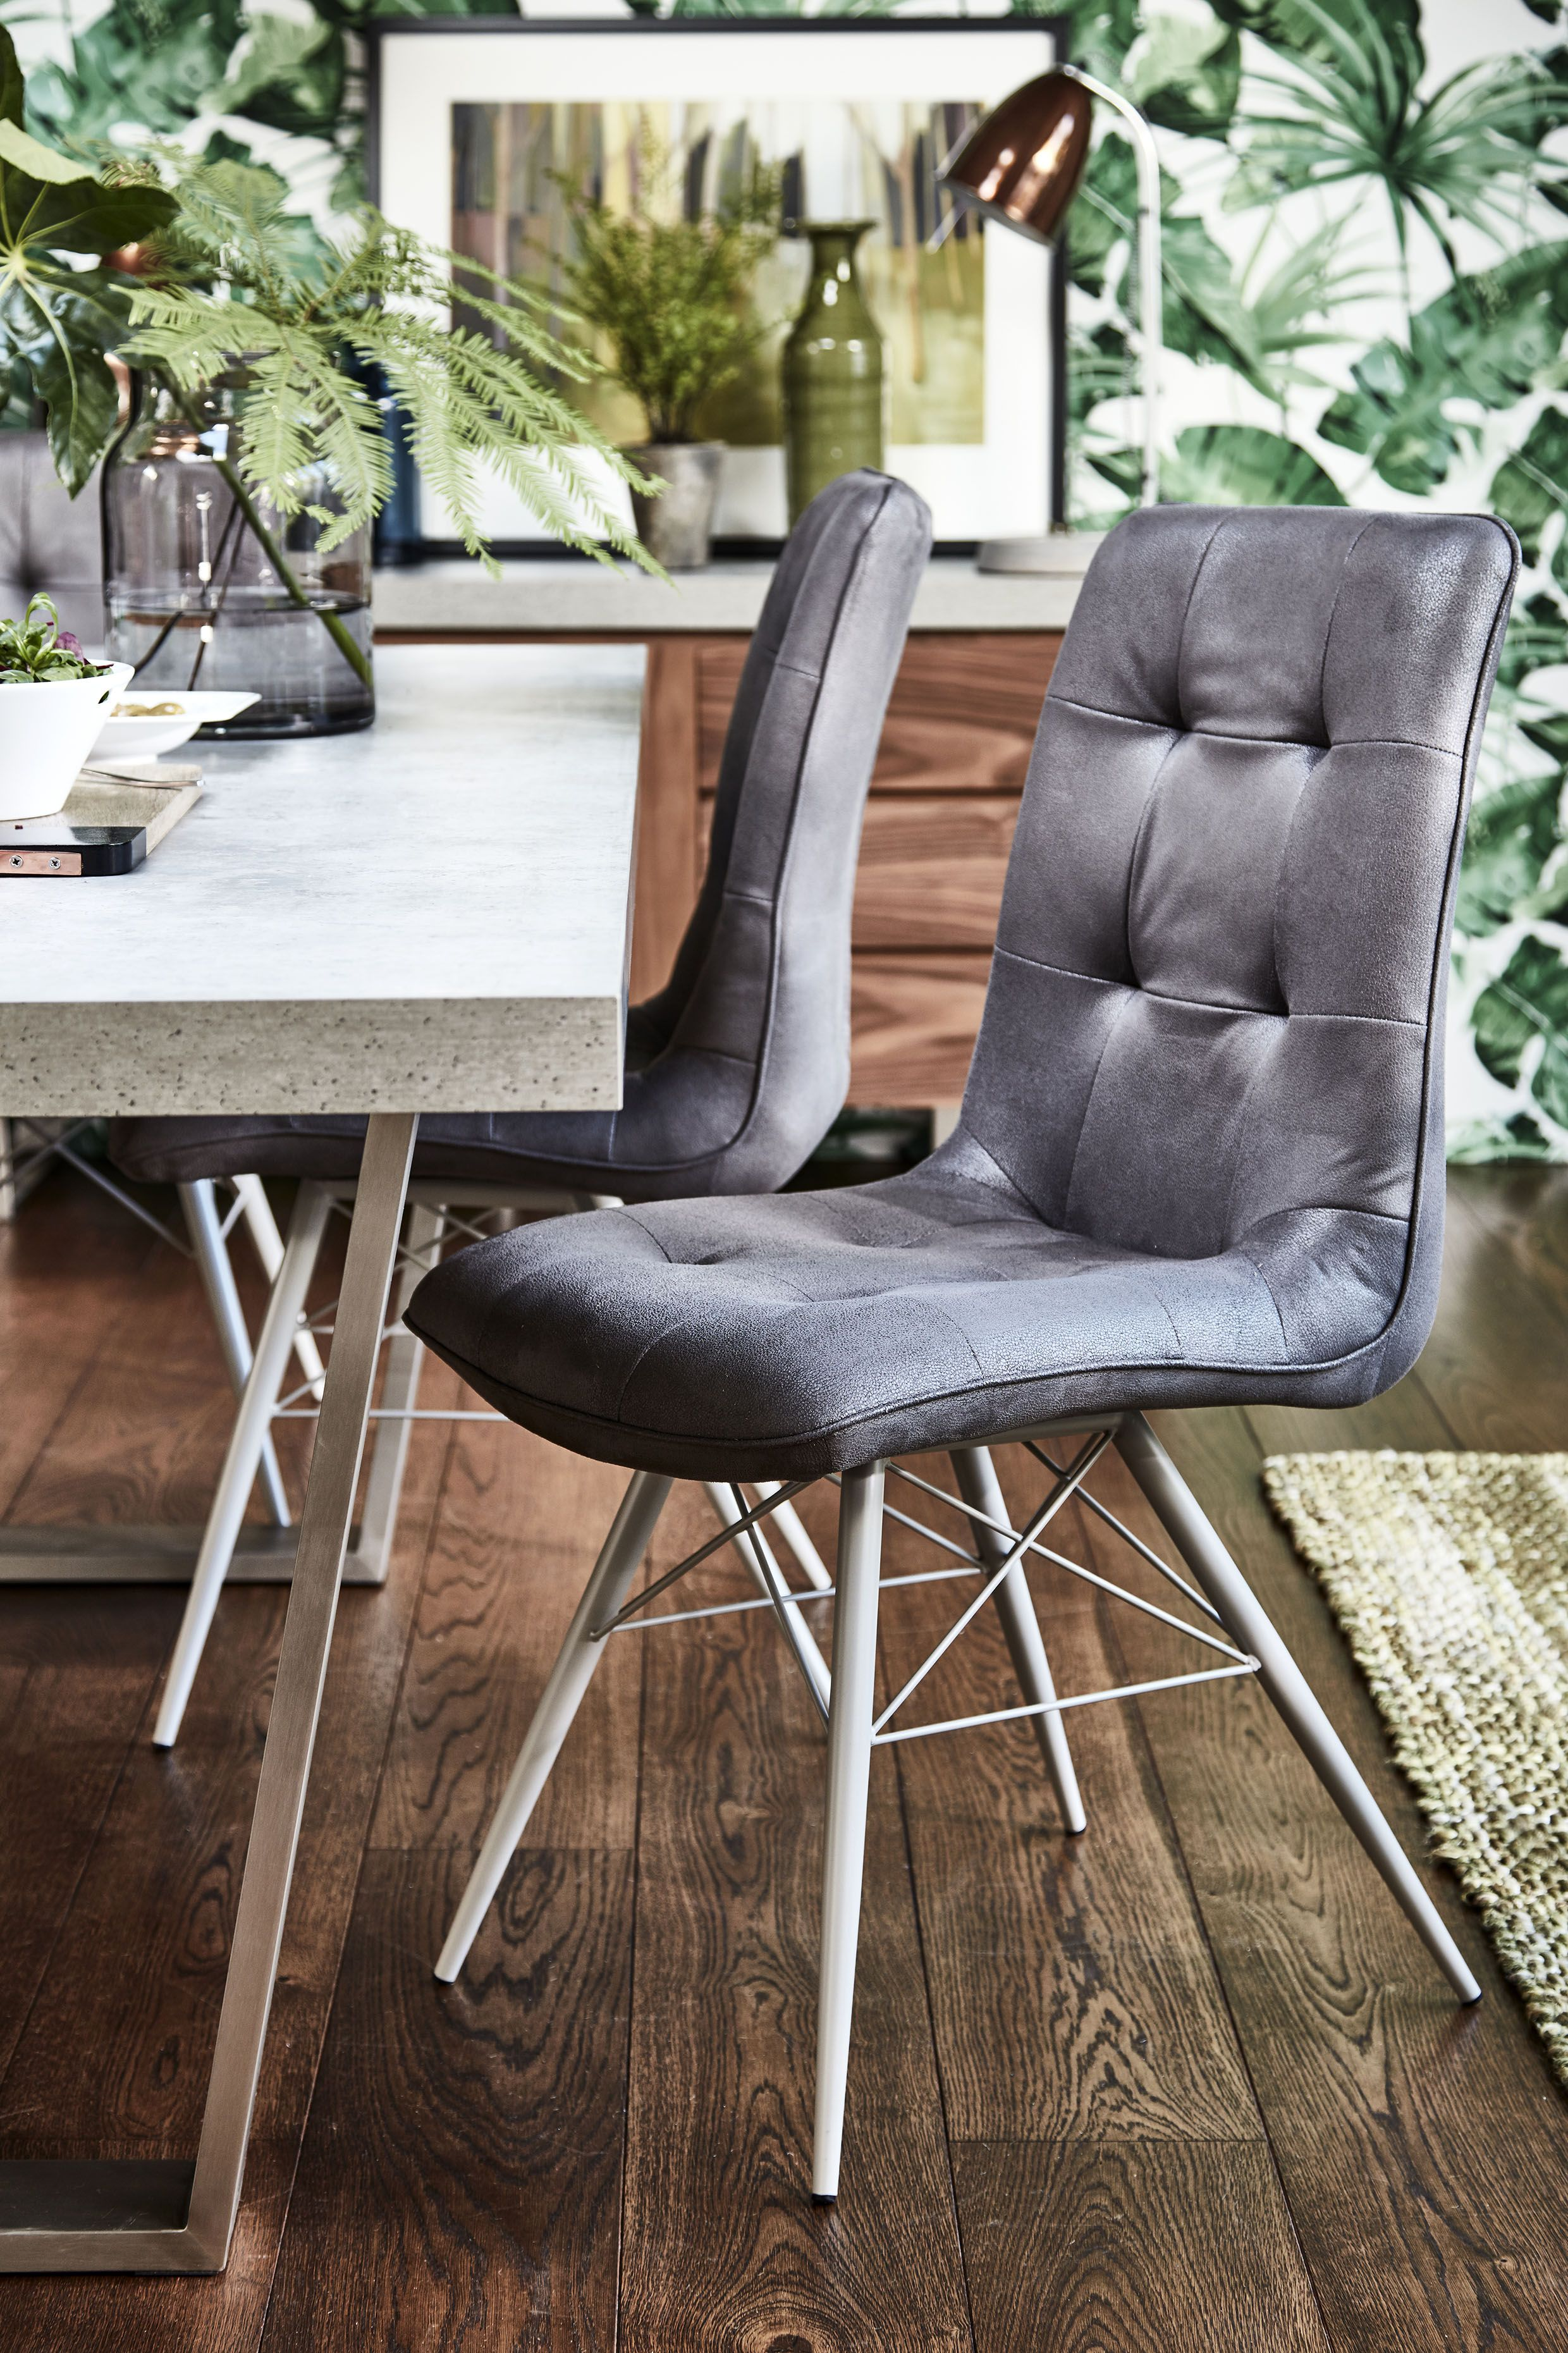 The Hix Chair Is Inspired By Retro Designs With A